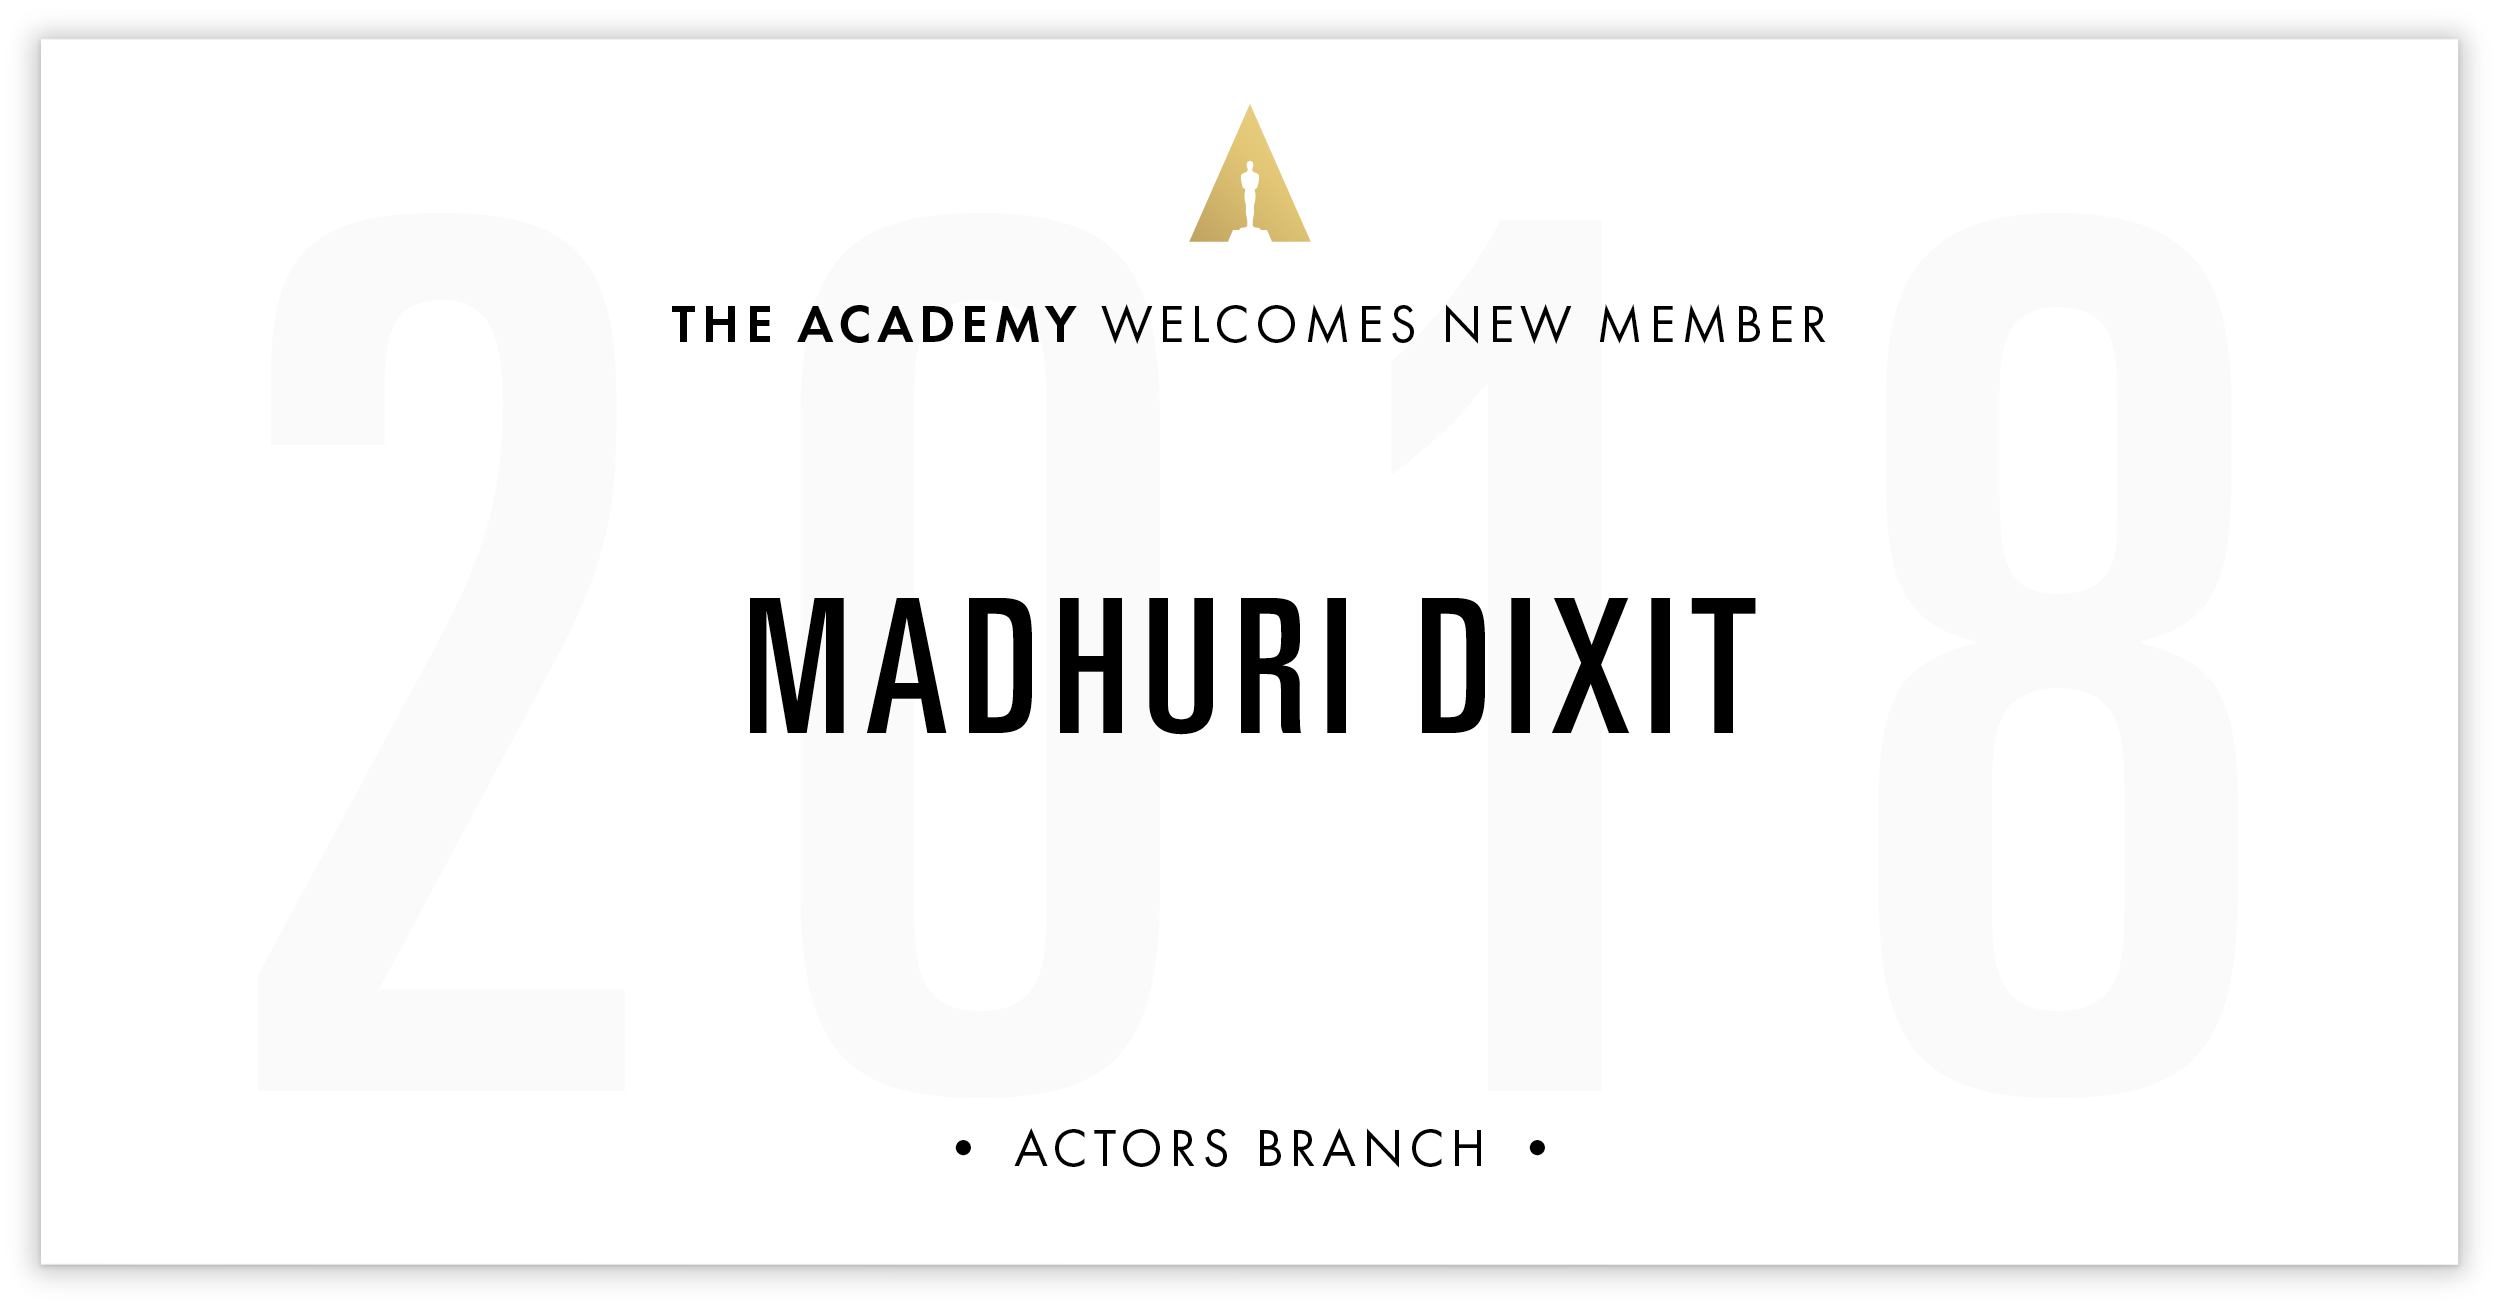 Madhuri Dixit is invited!